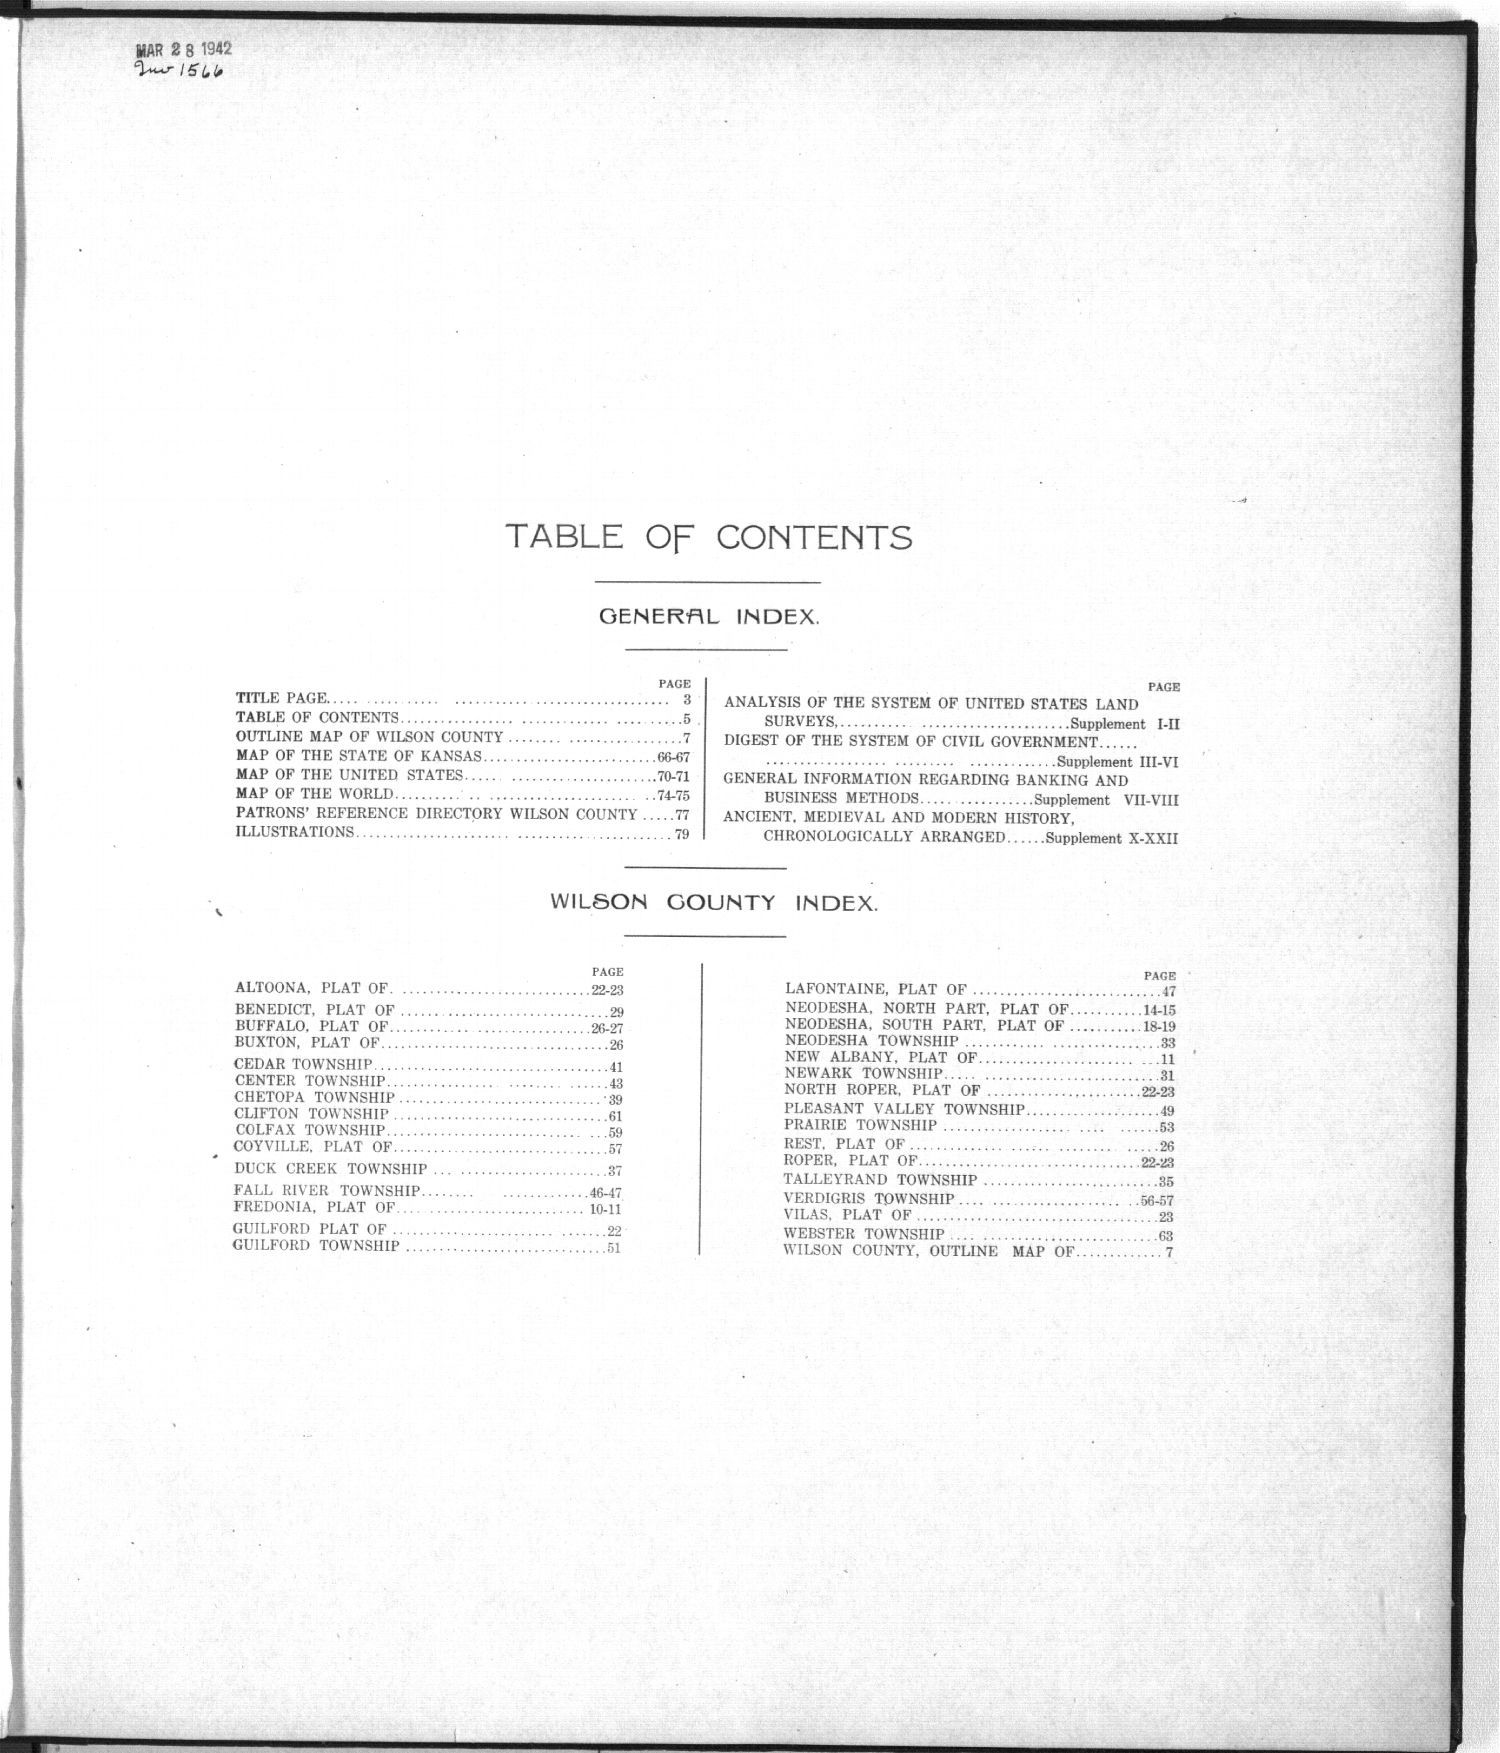 Standard atlas of Wilson County, Kansas - Table of Contents